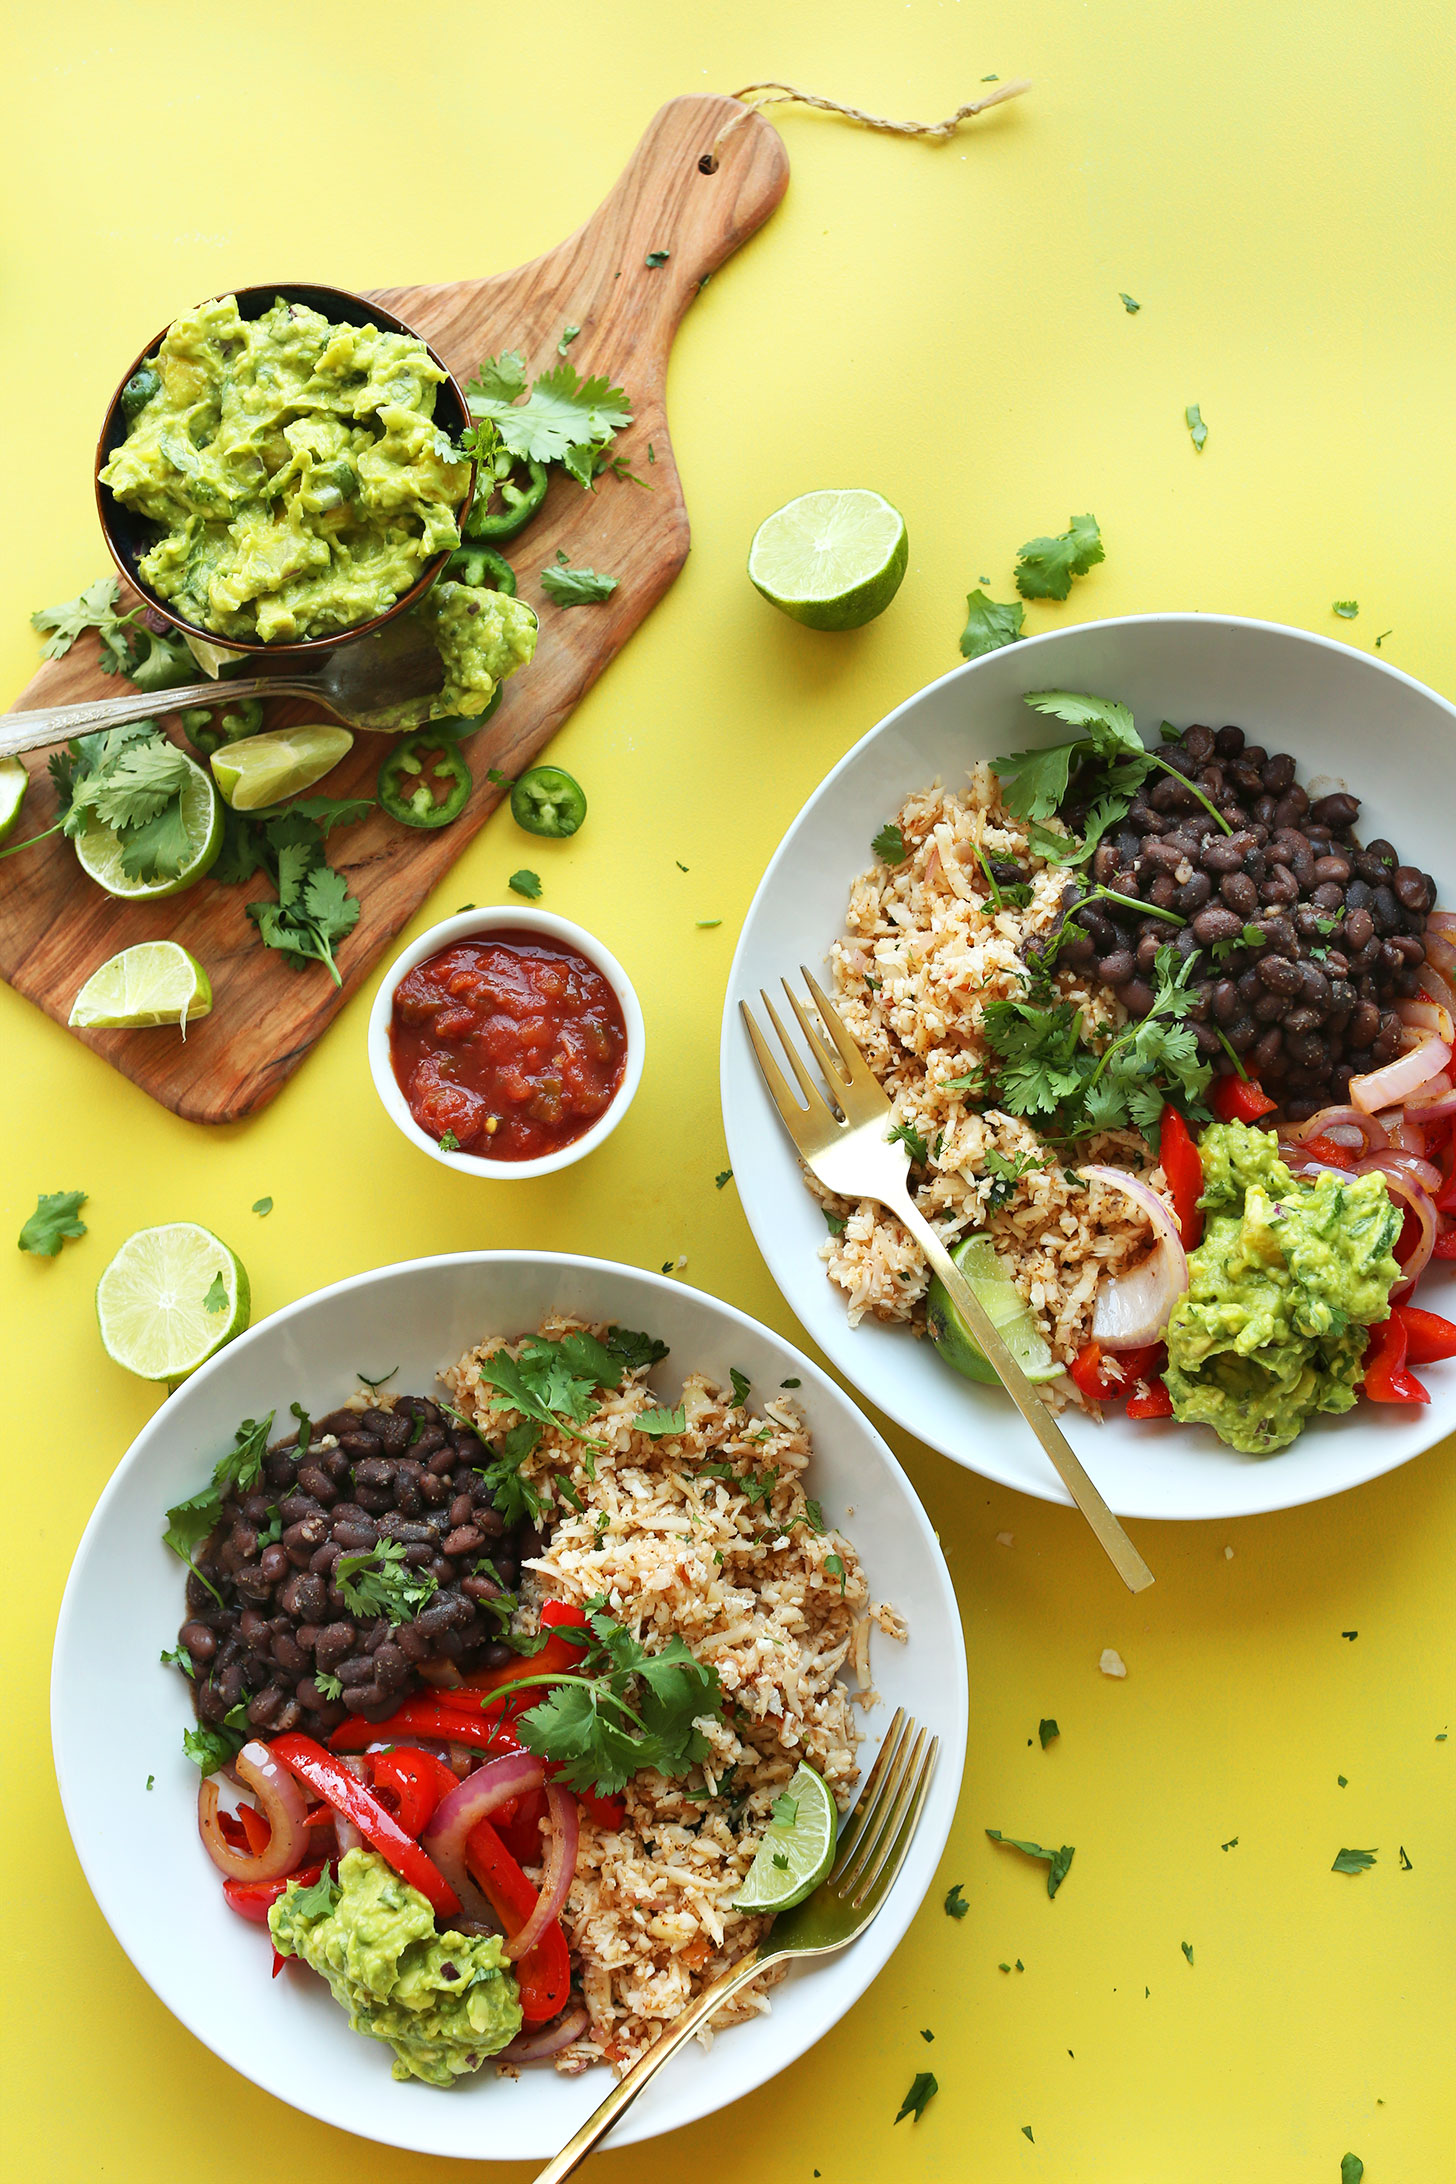 Cauliflower Rice Burrito Bowls with guacamole for a gluten-free vegan mexican meal